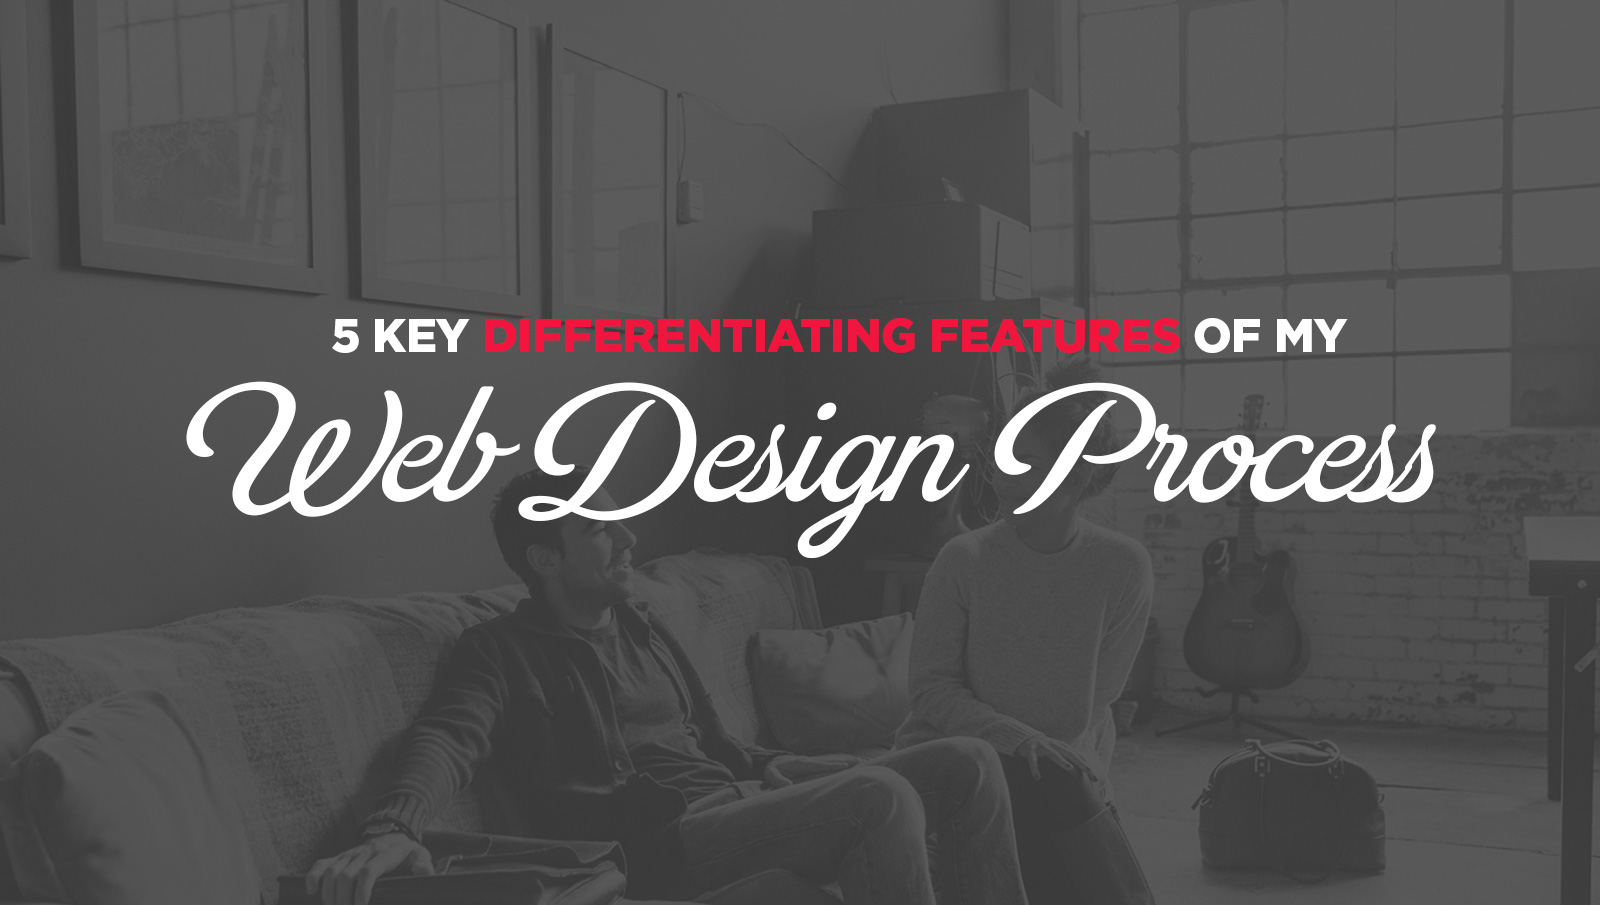 5 Key Differentiating Features of My Web Design Process